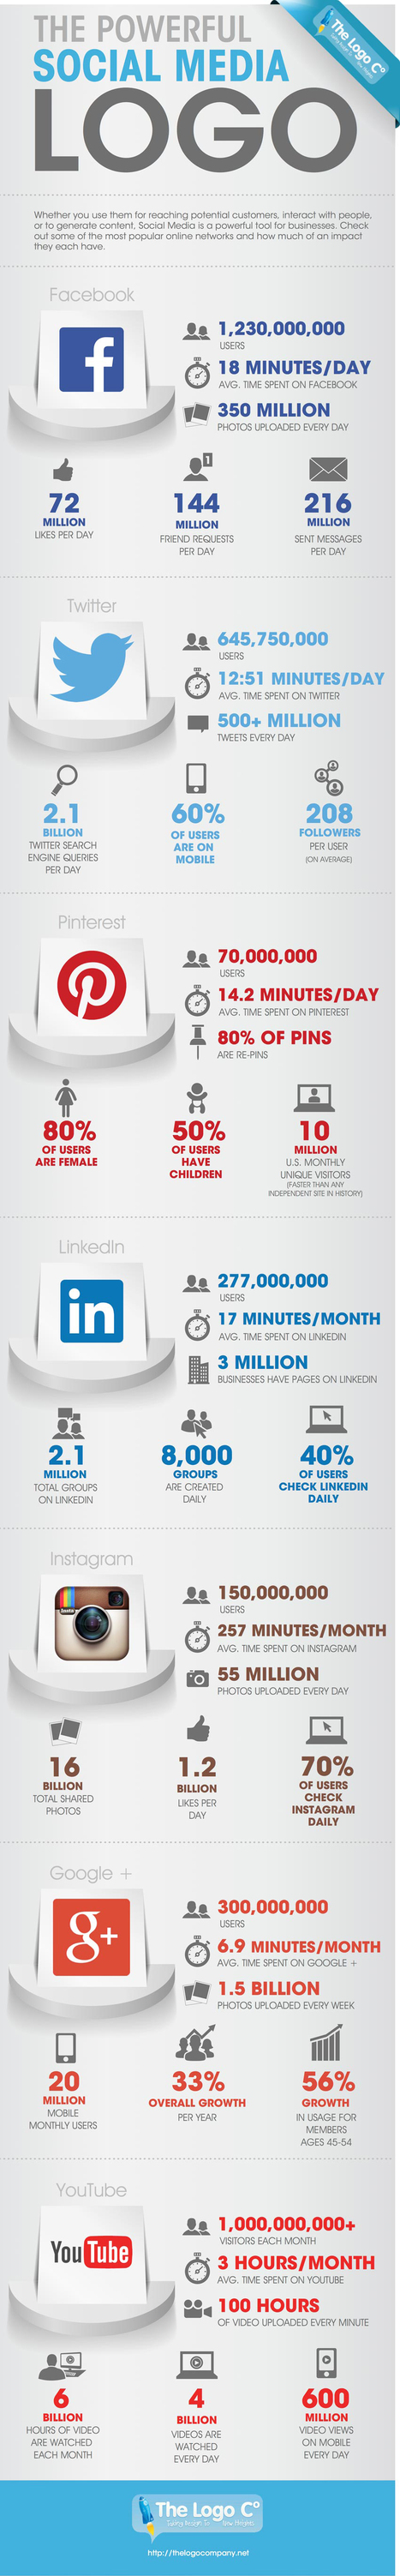 We are SOCIAL Therefore We ARE: Lies, Damn Lies & Statistics on Social Nets [Infographic] | Digital Marketing | Scoop.it